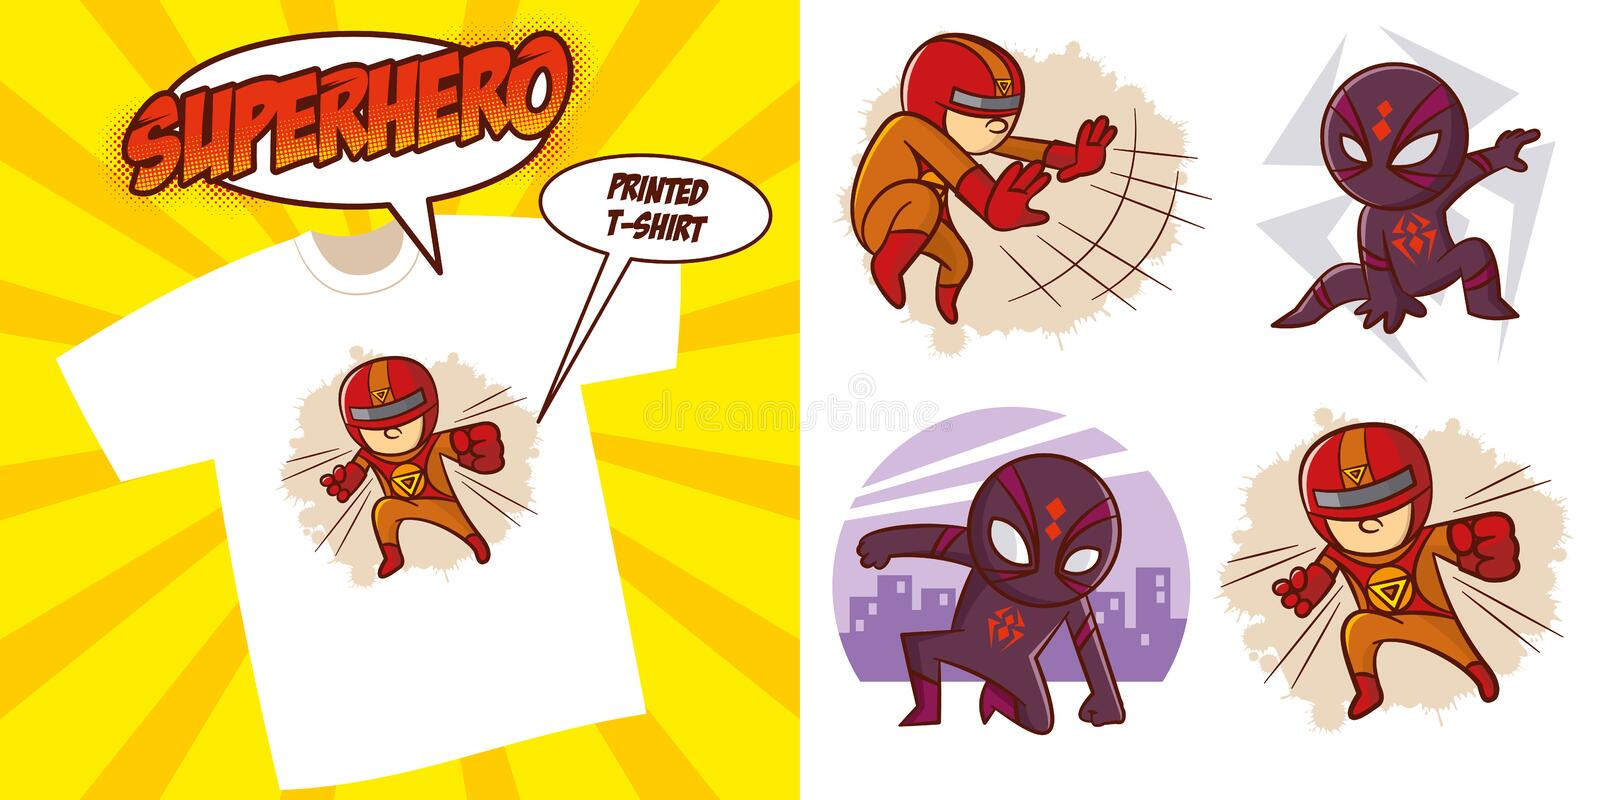 Superhero character Superheroes Set Vector illustration design. Superheroes Set Superhero character Vector illustration design for printed t-shirt vector illustration